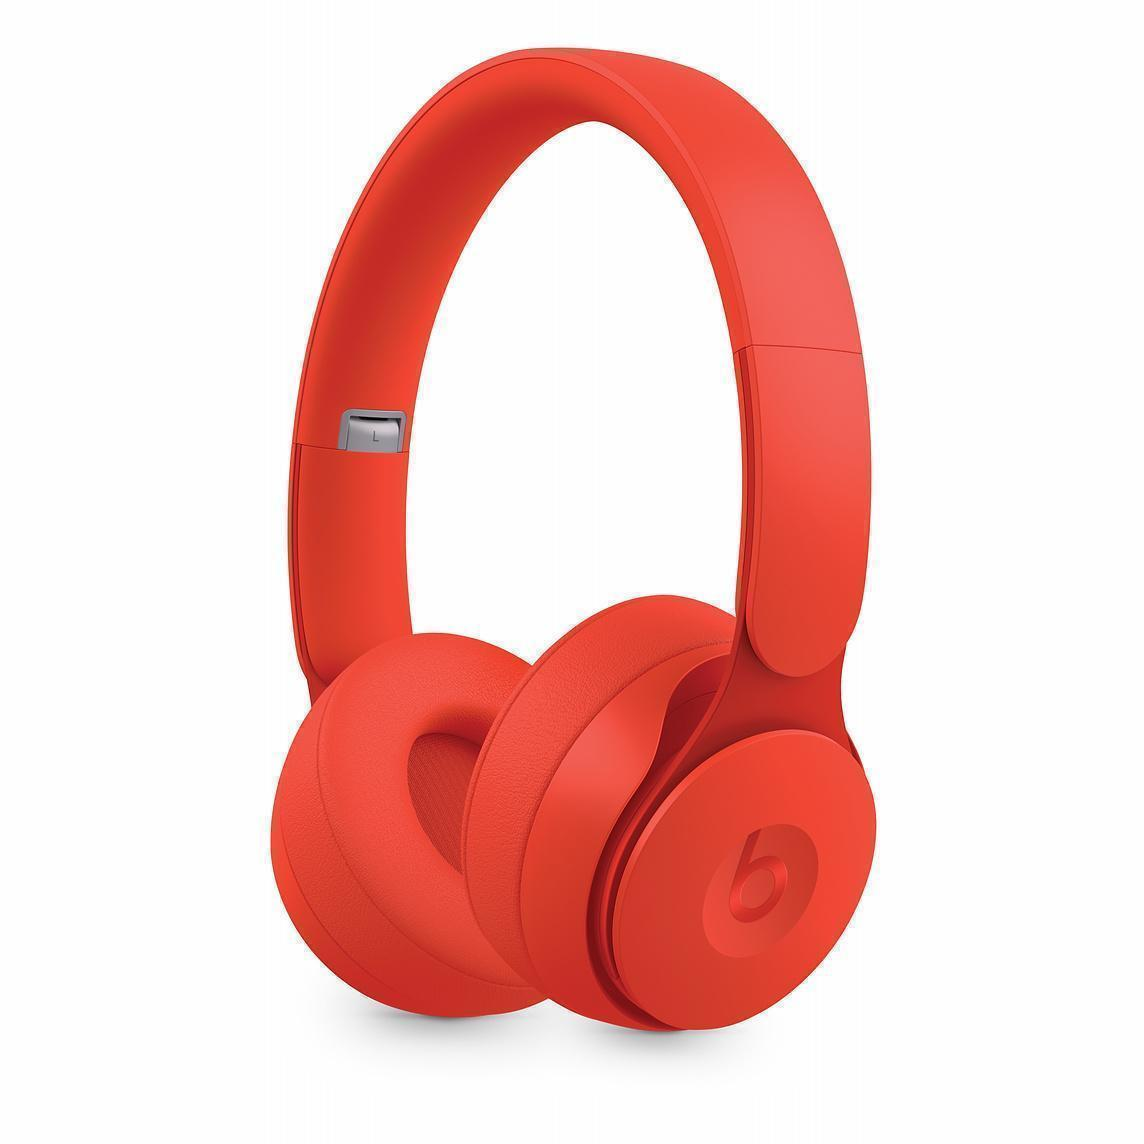 Beats By Dr. Dre Solo Pro Noise-Cancelling Bluetooth Headphones with microphone - Red